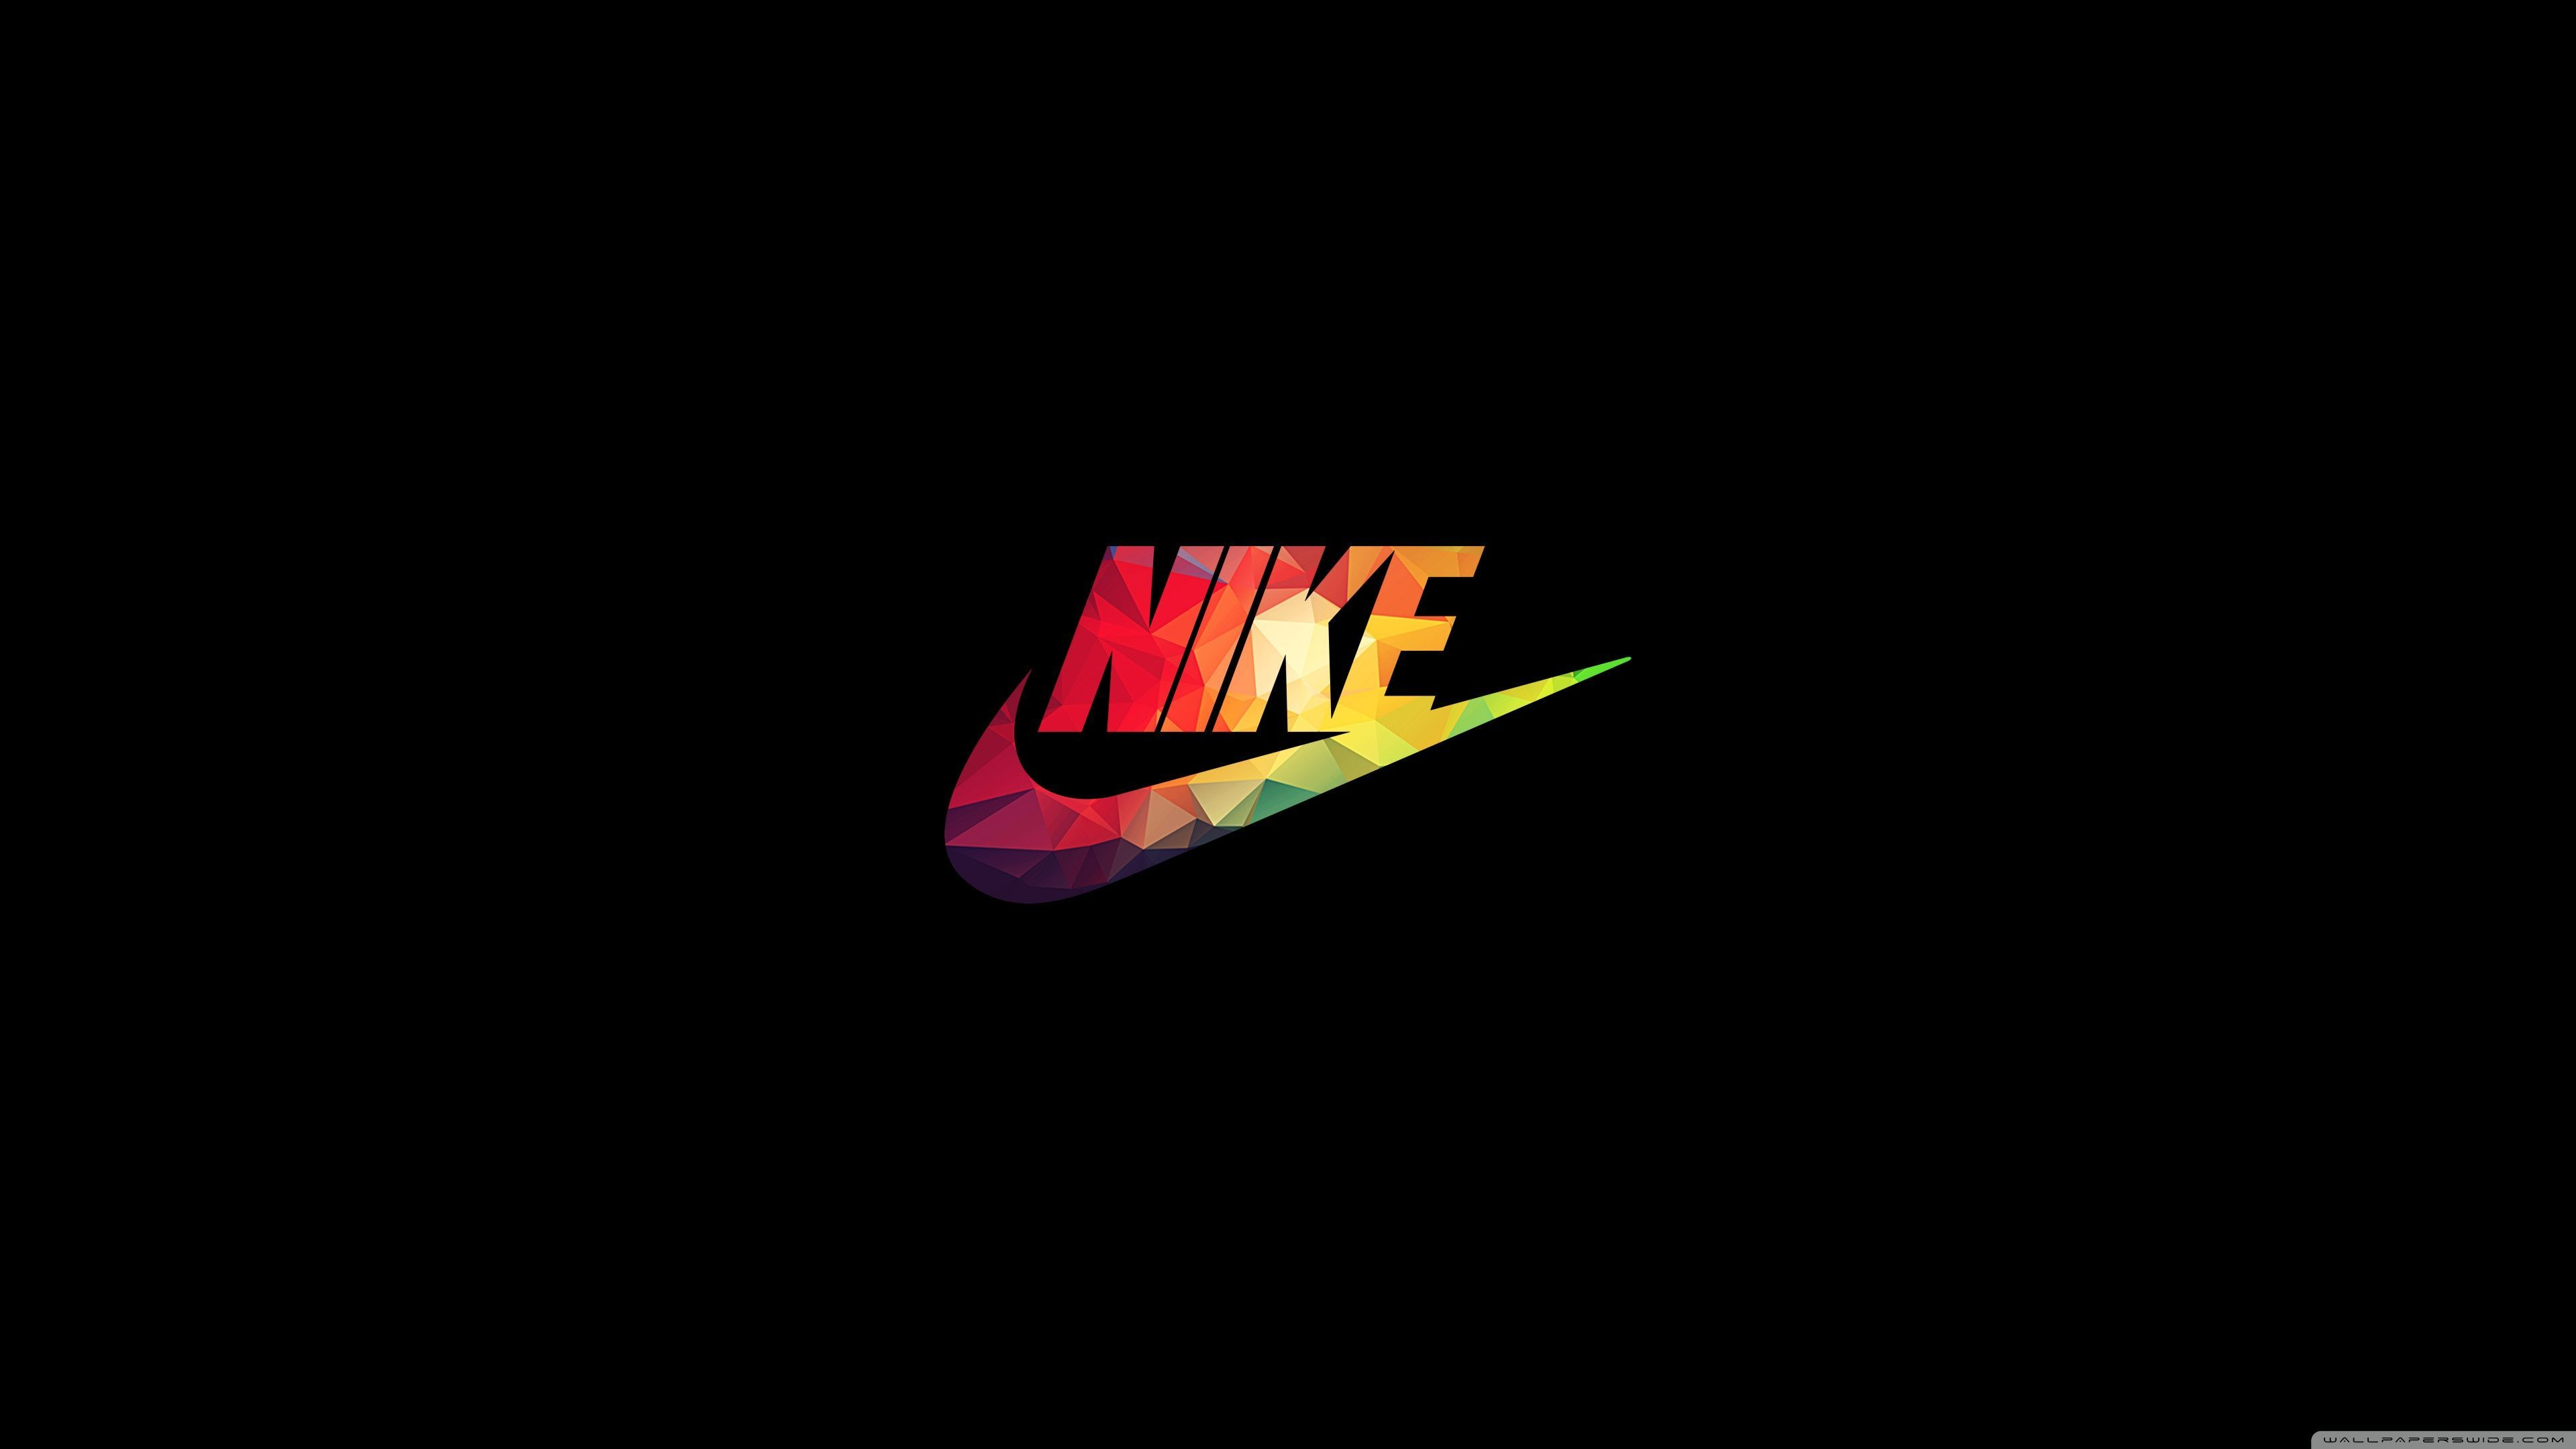 Nike Logo Wallpaper For Computer Wallpaper Nice In 2020 Nike Logo Wallpapers Nike Wallpaper Cool Nike Wallpapers